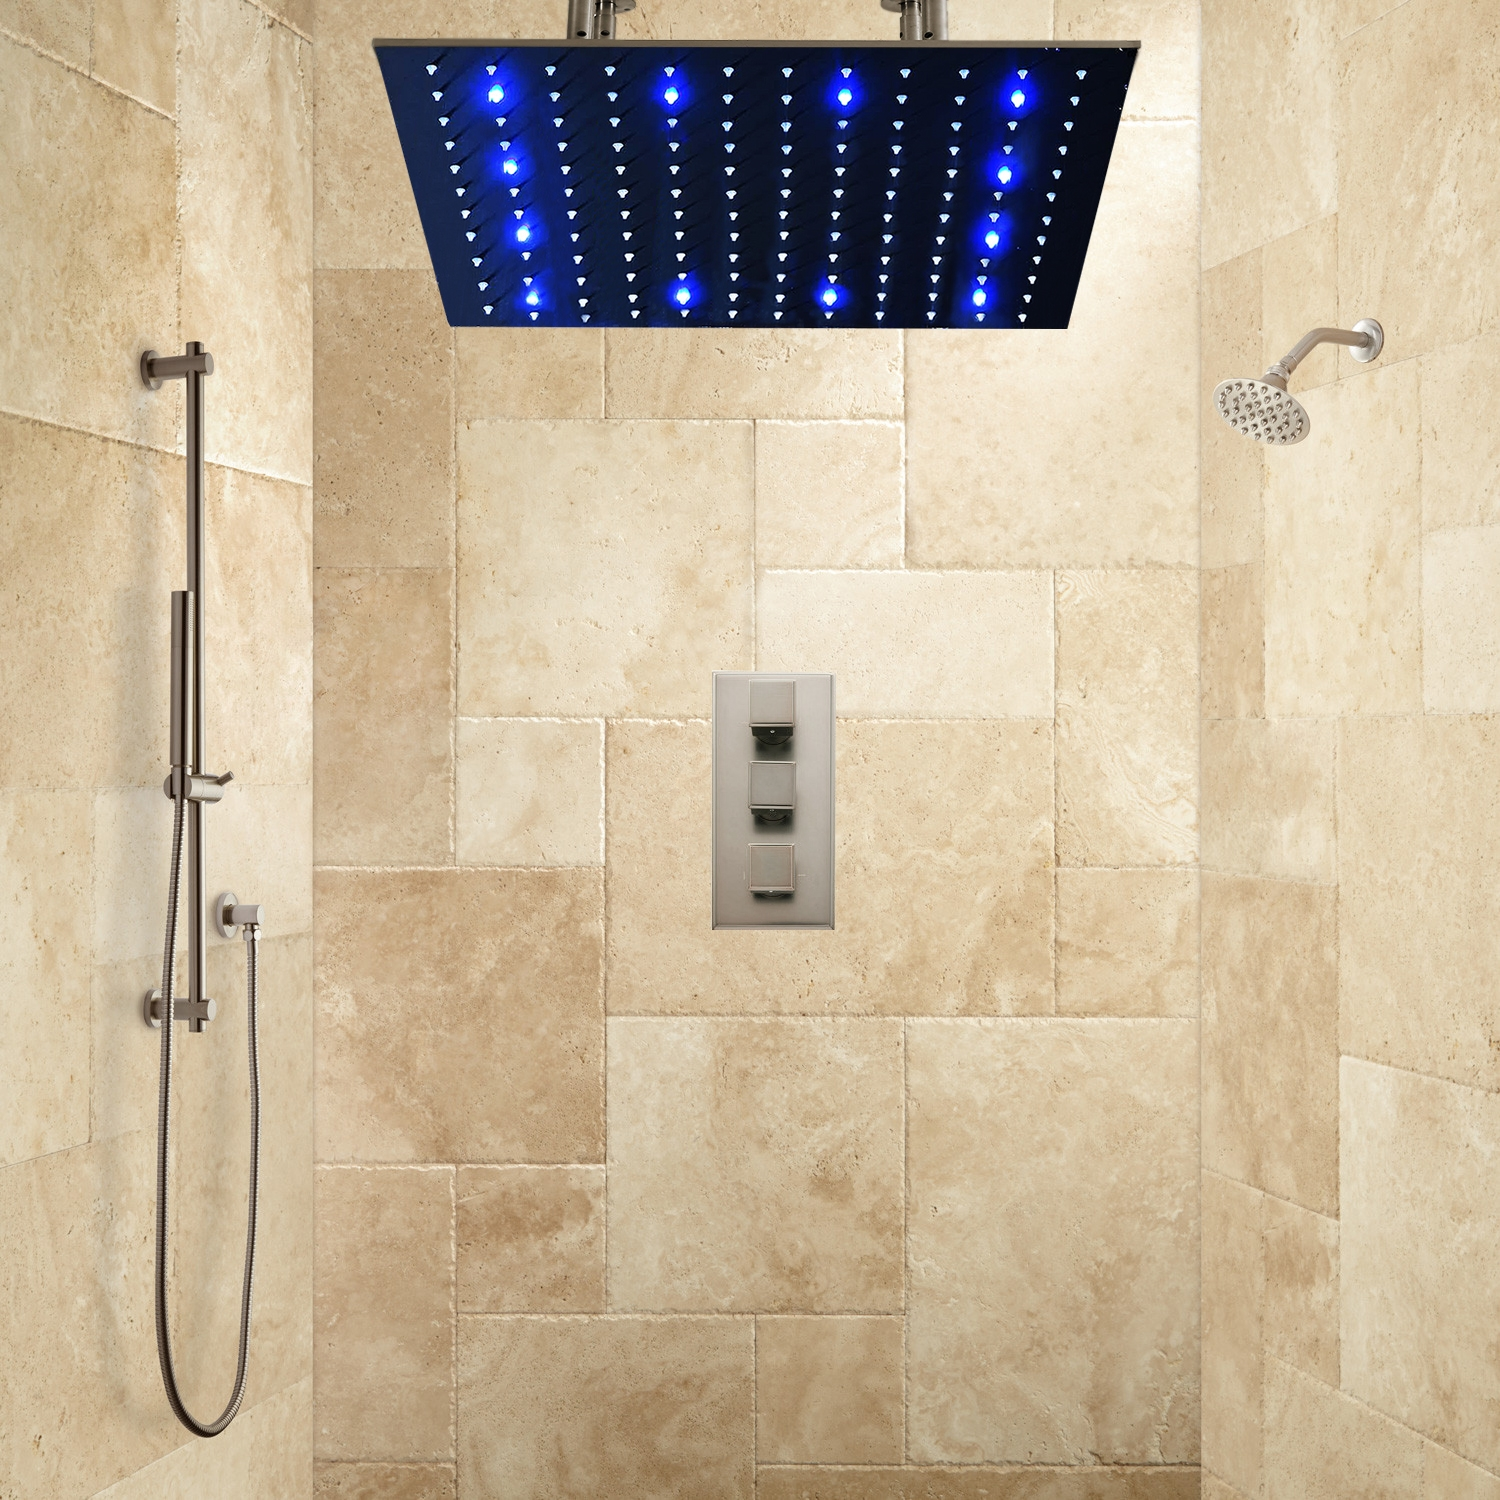 thermostatic shower system in brushed nickel finish